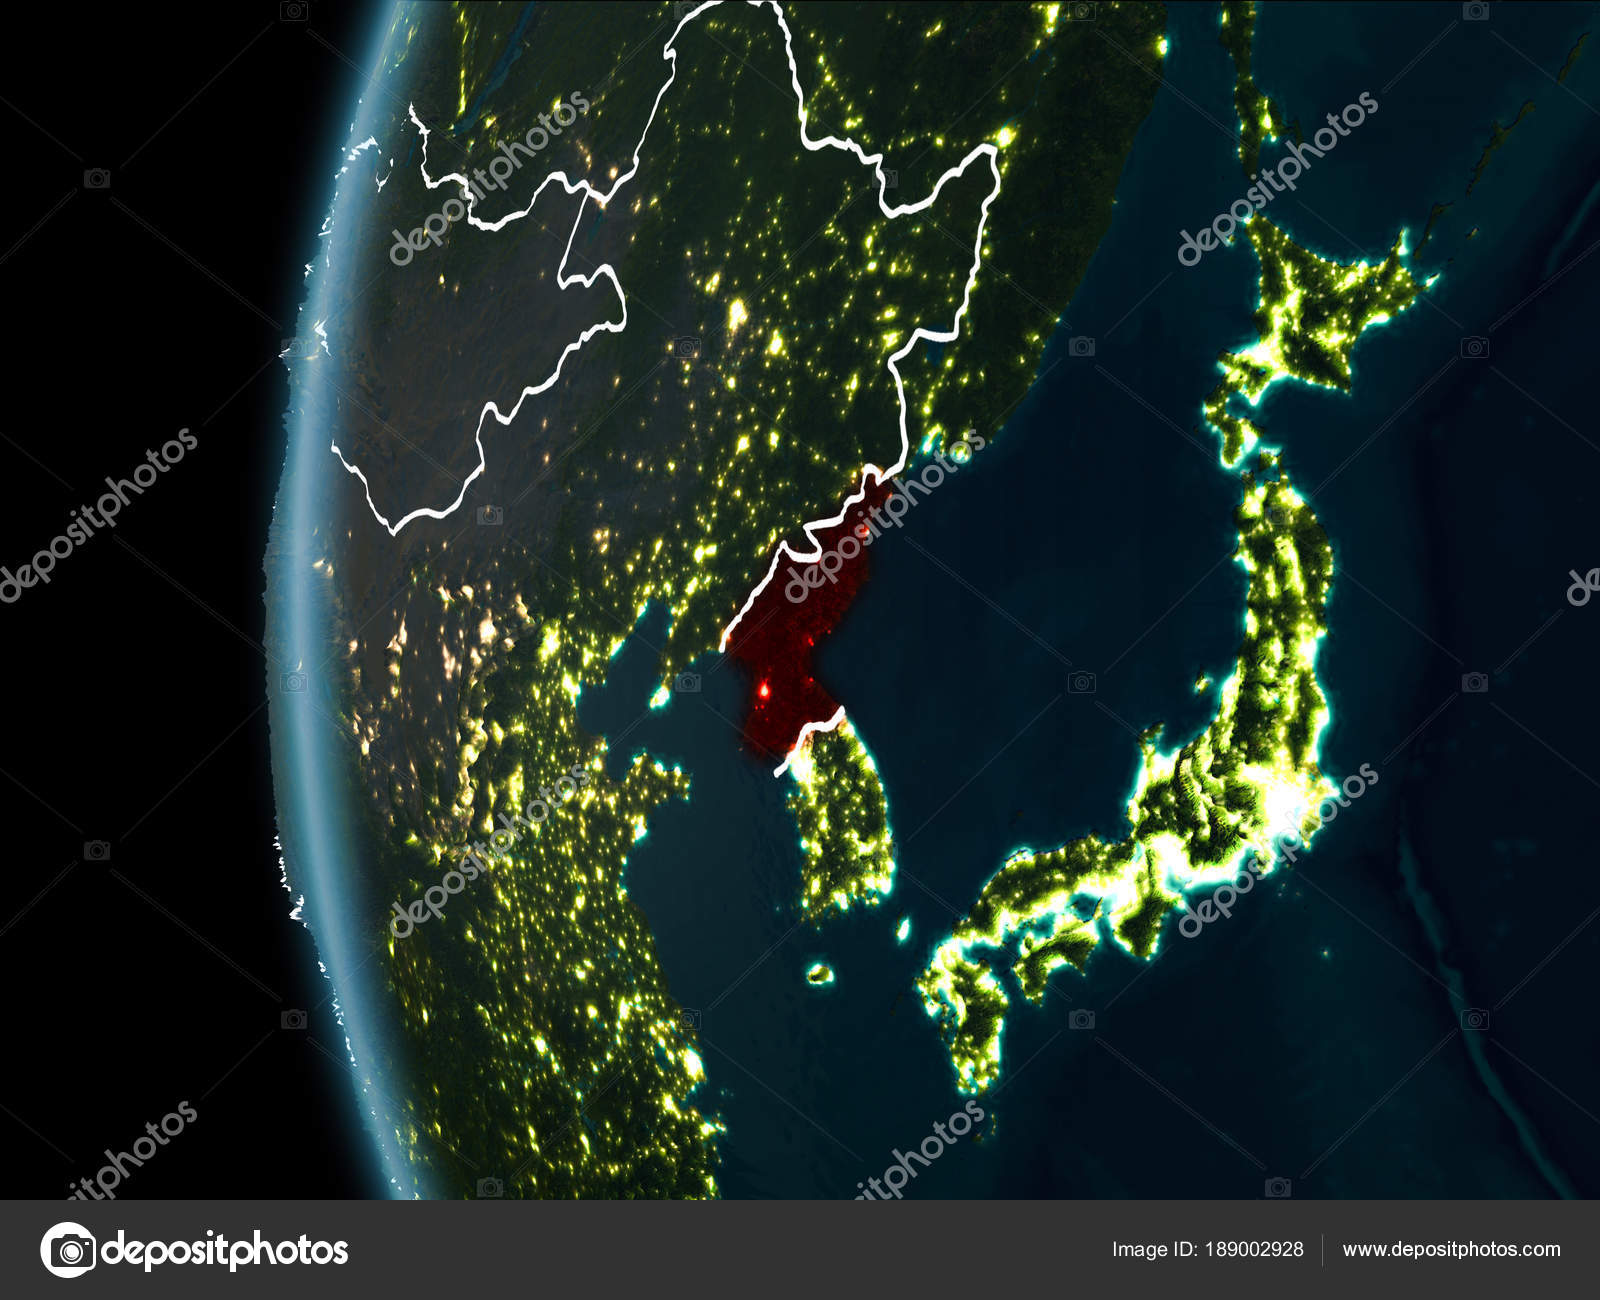 North korea from space at night stock photo tomiger 189002928 orbit view of north korea highlighted in red with visible borderlines and city lights on planet earth at night 3d illustration gumiabroncs Image collections